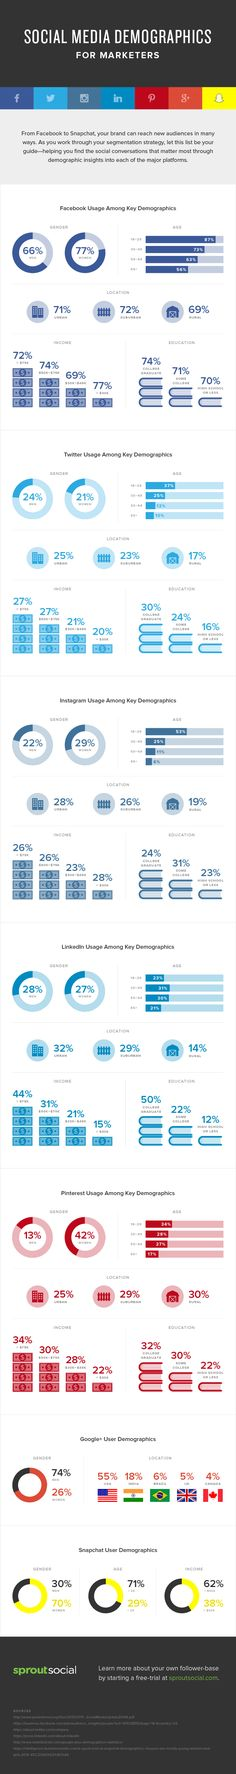 Social Media Demographics for Marketers | Sprout Social